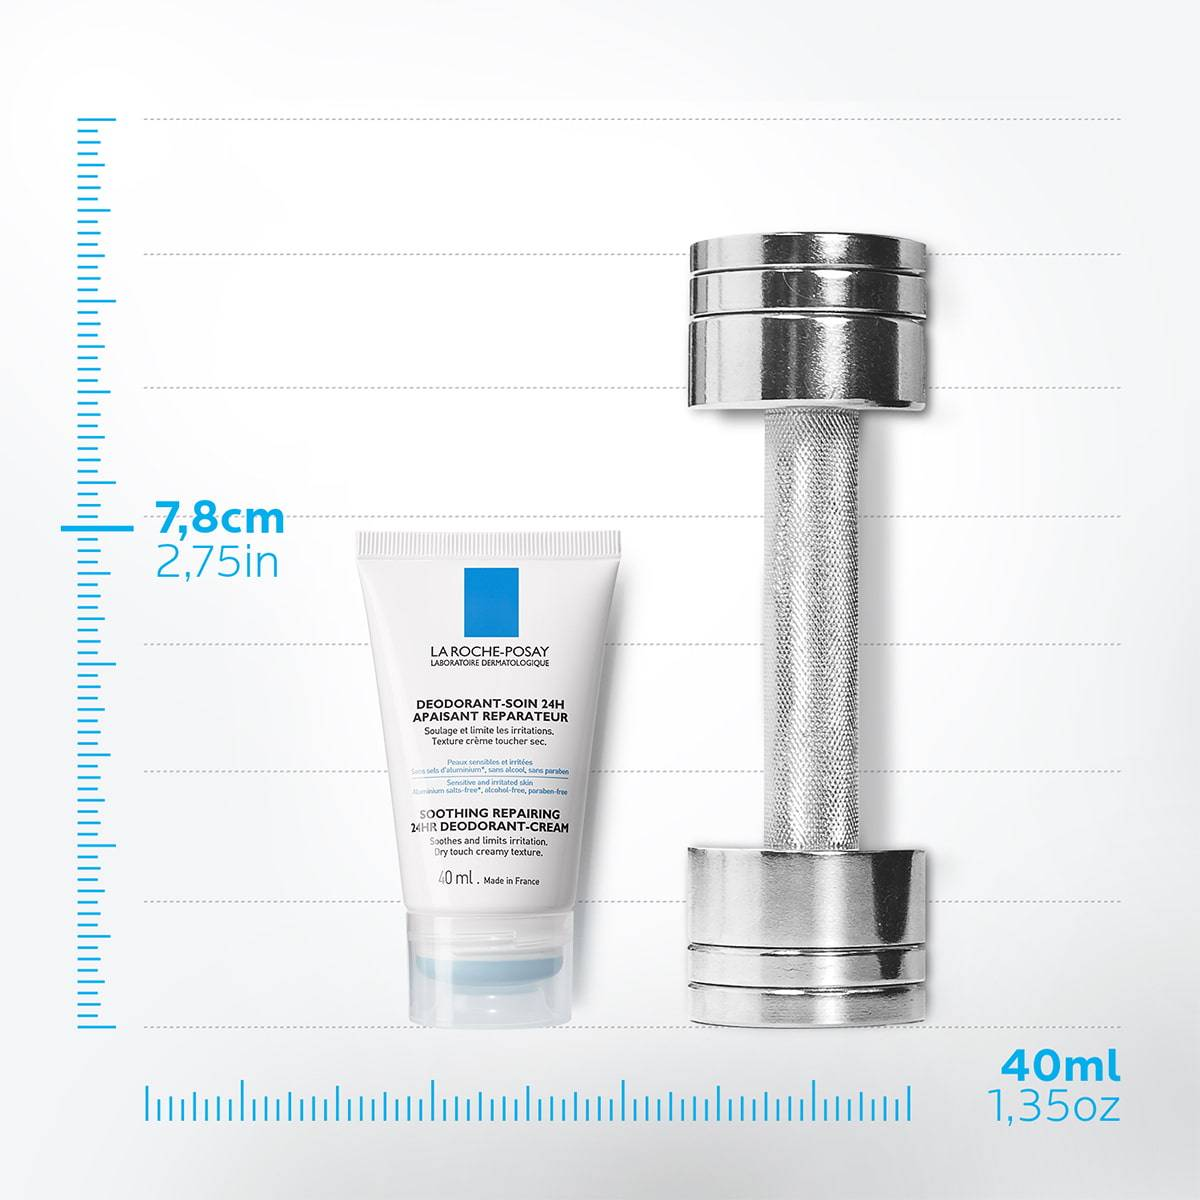 La Roche Posay ProductPage Deodorant Soothing Repairing 24h Cream 3337